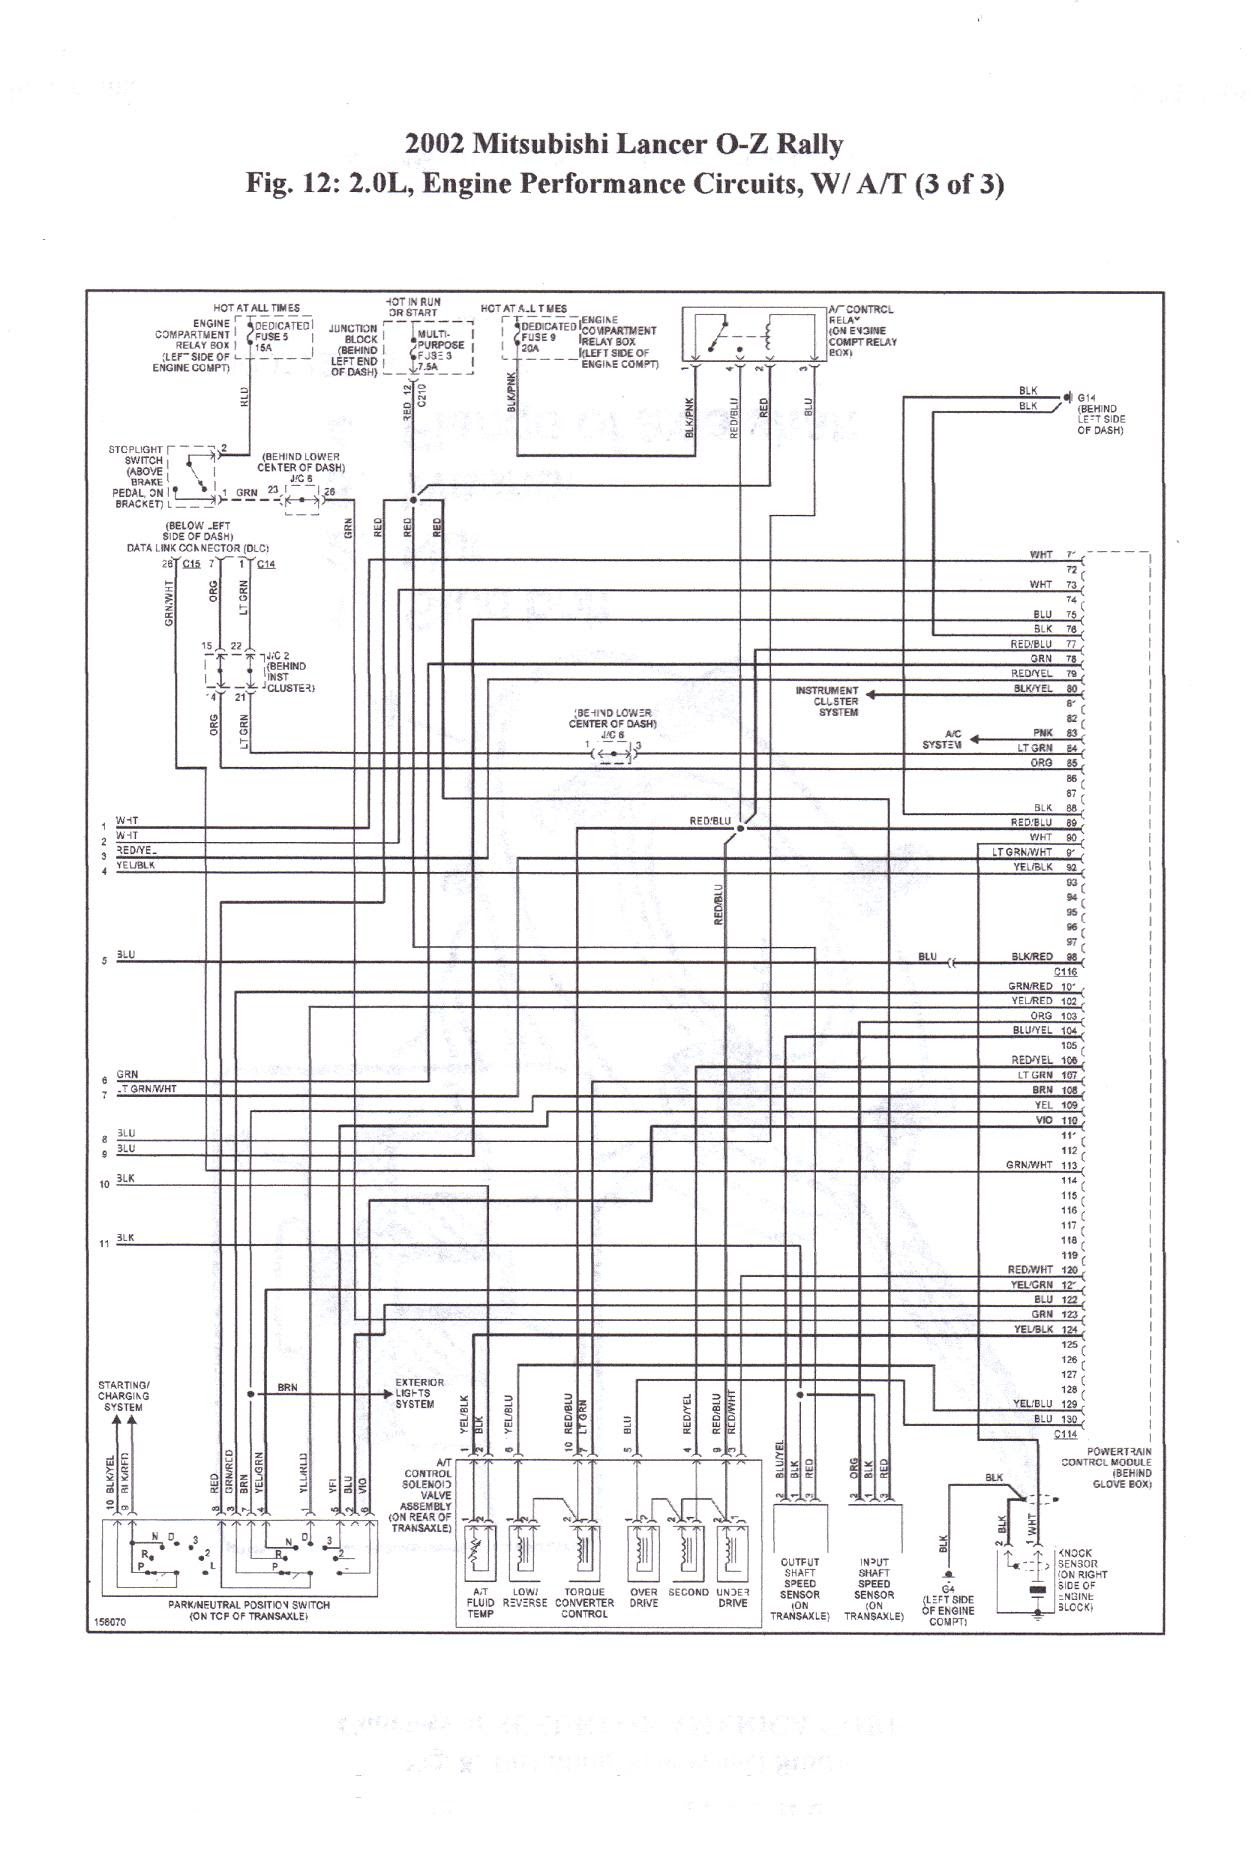 2002 Mitsubishi Lancer Front End Diagram Wiring Schematic Wiring Diagram Snow Last Snow Last Lionsclubviterbo It